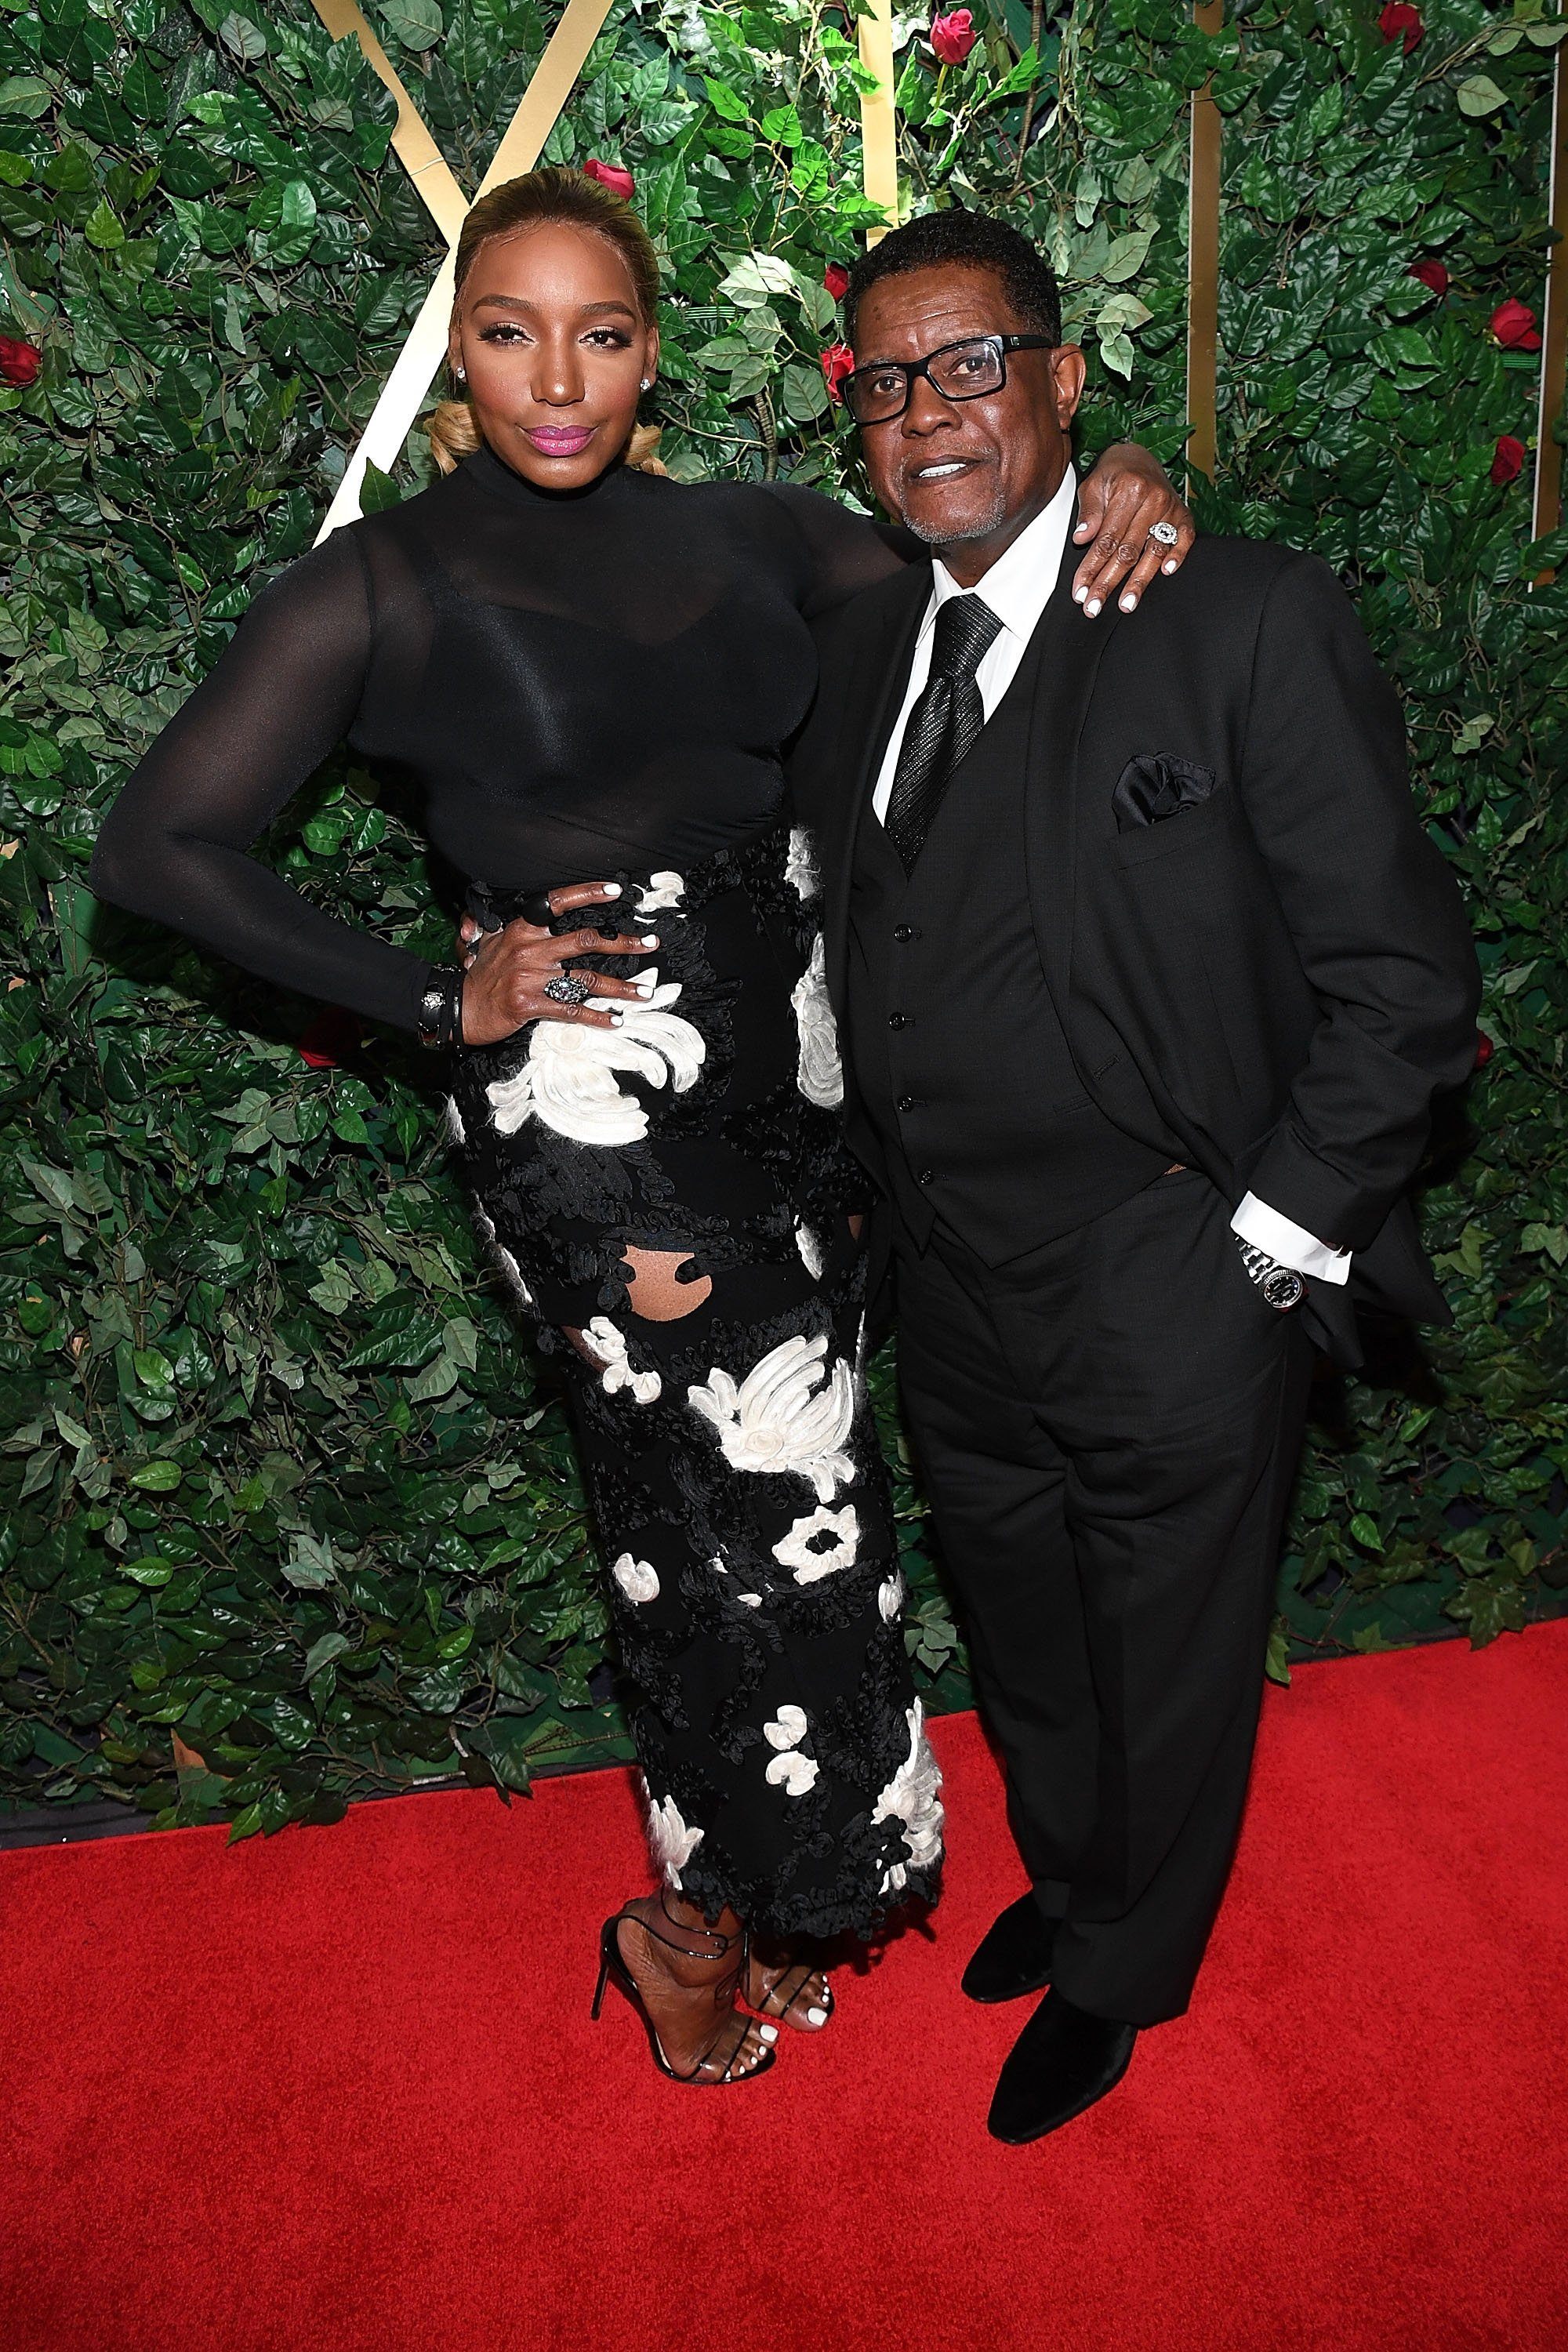 Nene Leakes and her husband Gregg Leakes | Photo: Getty Images